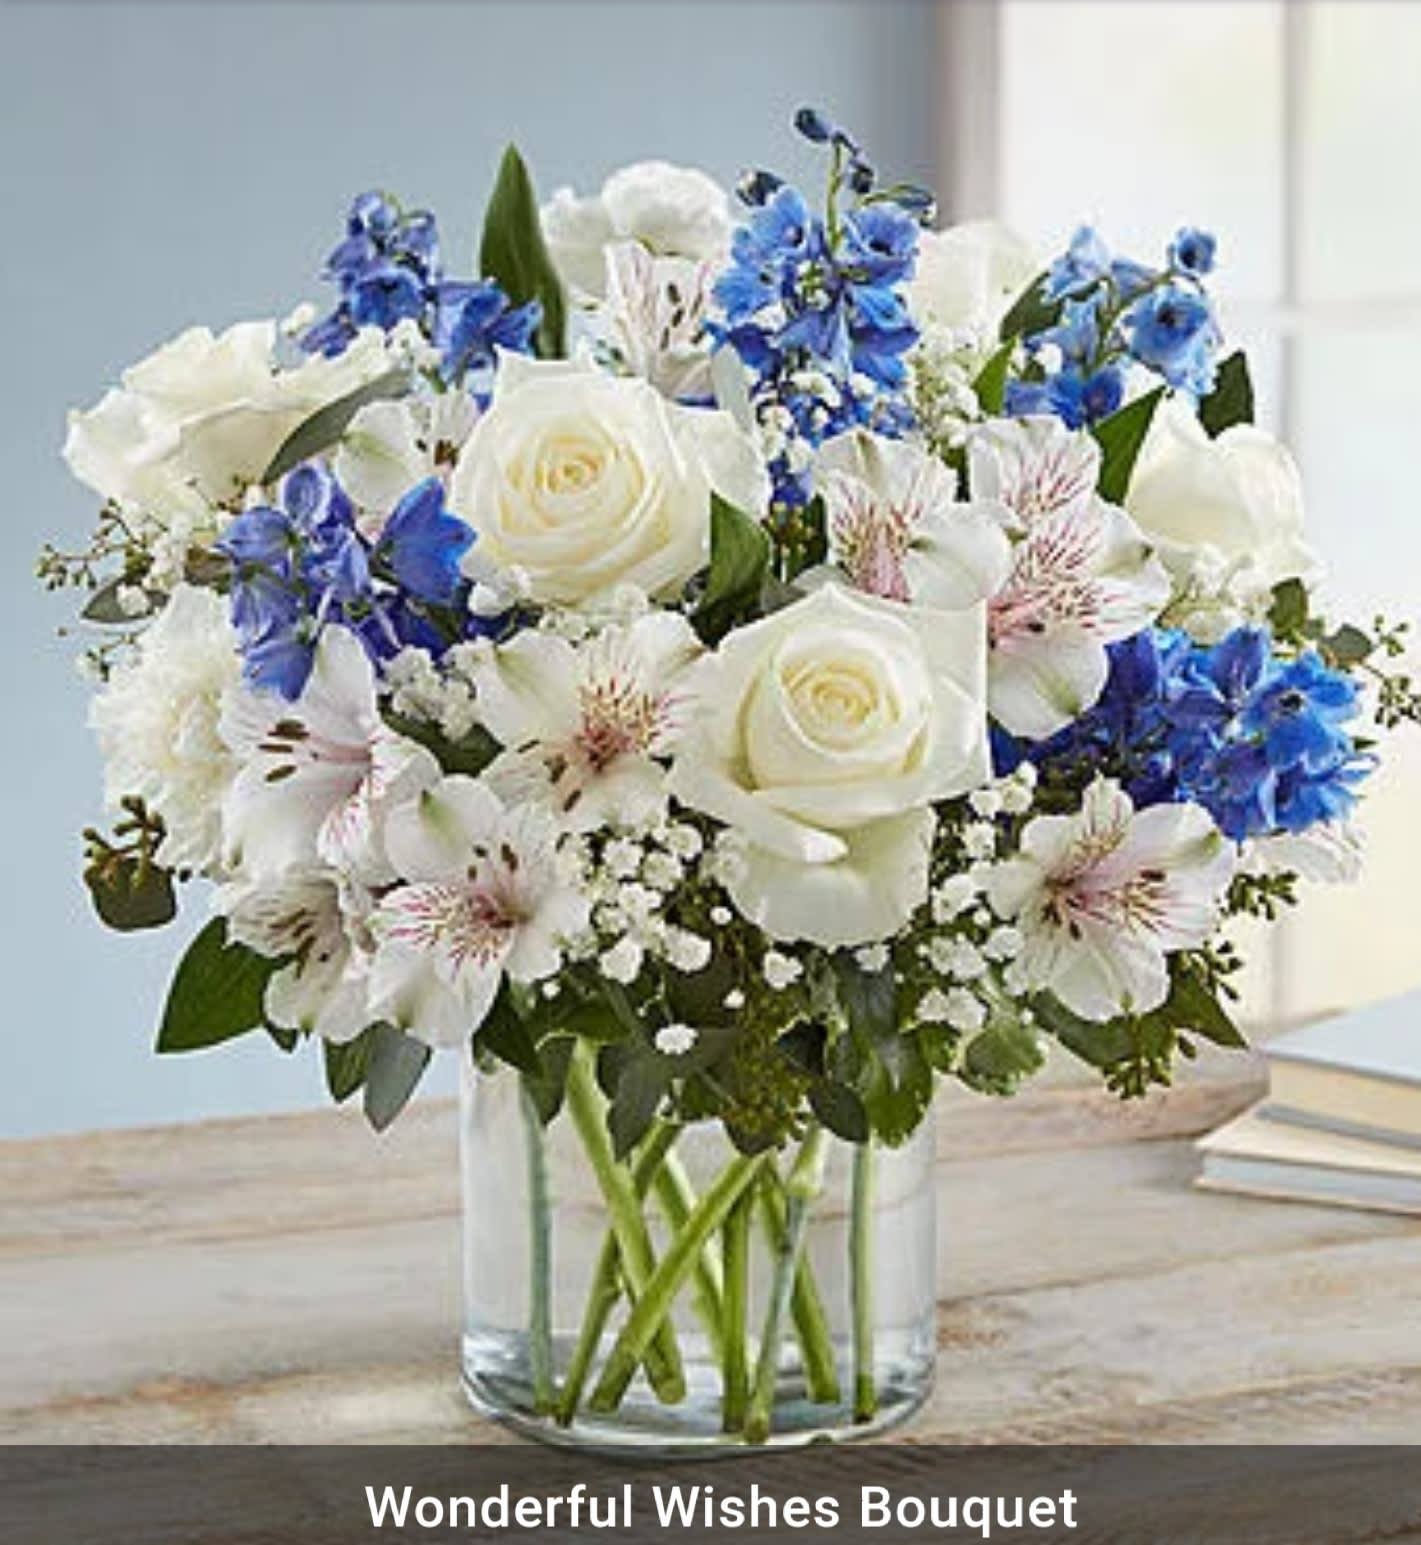 Wonderful Wishes Bouquet Mixture Of White Flowers With A Blue Flower Accent In Clear